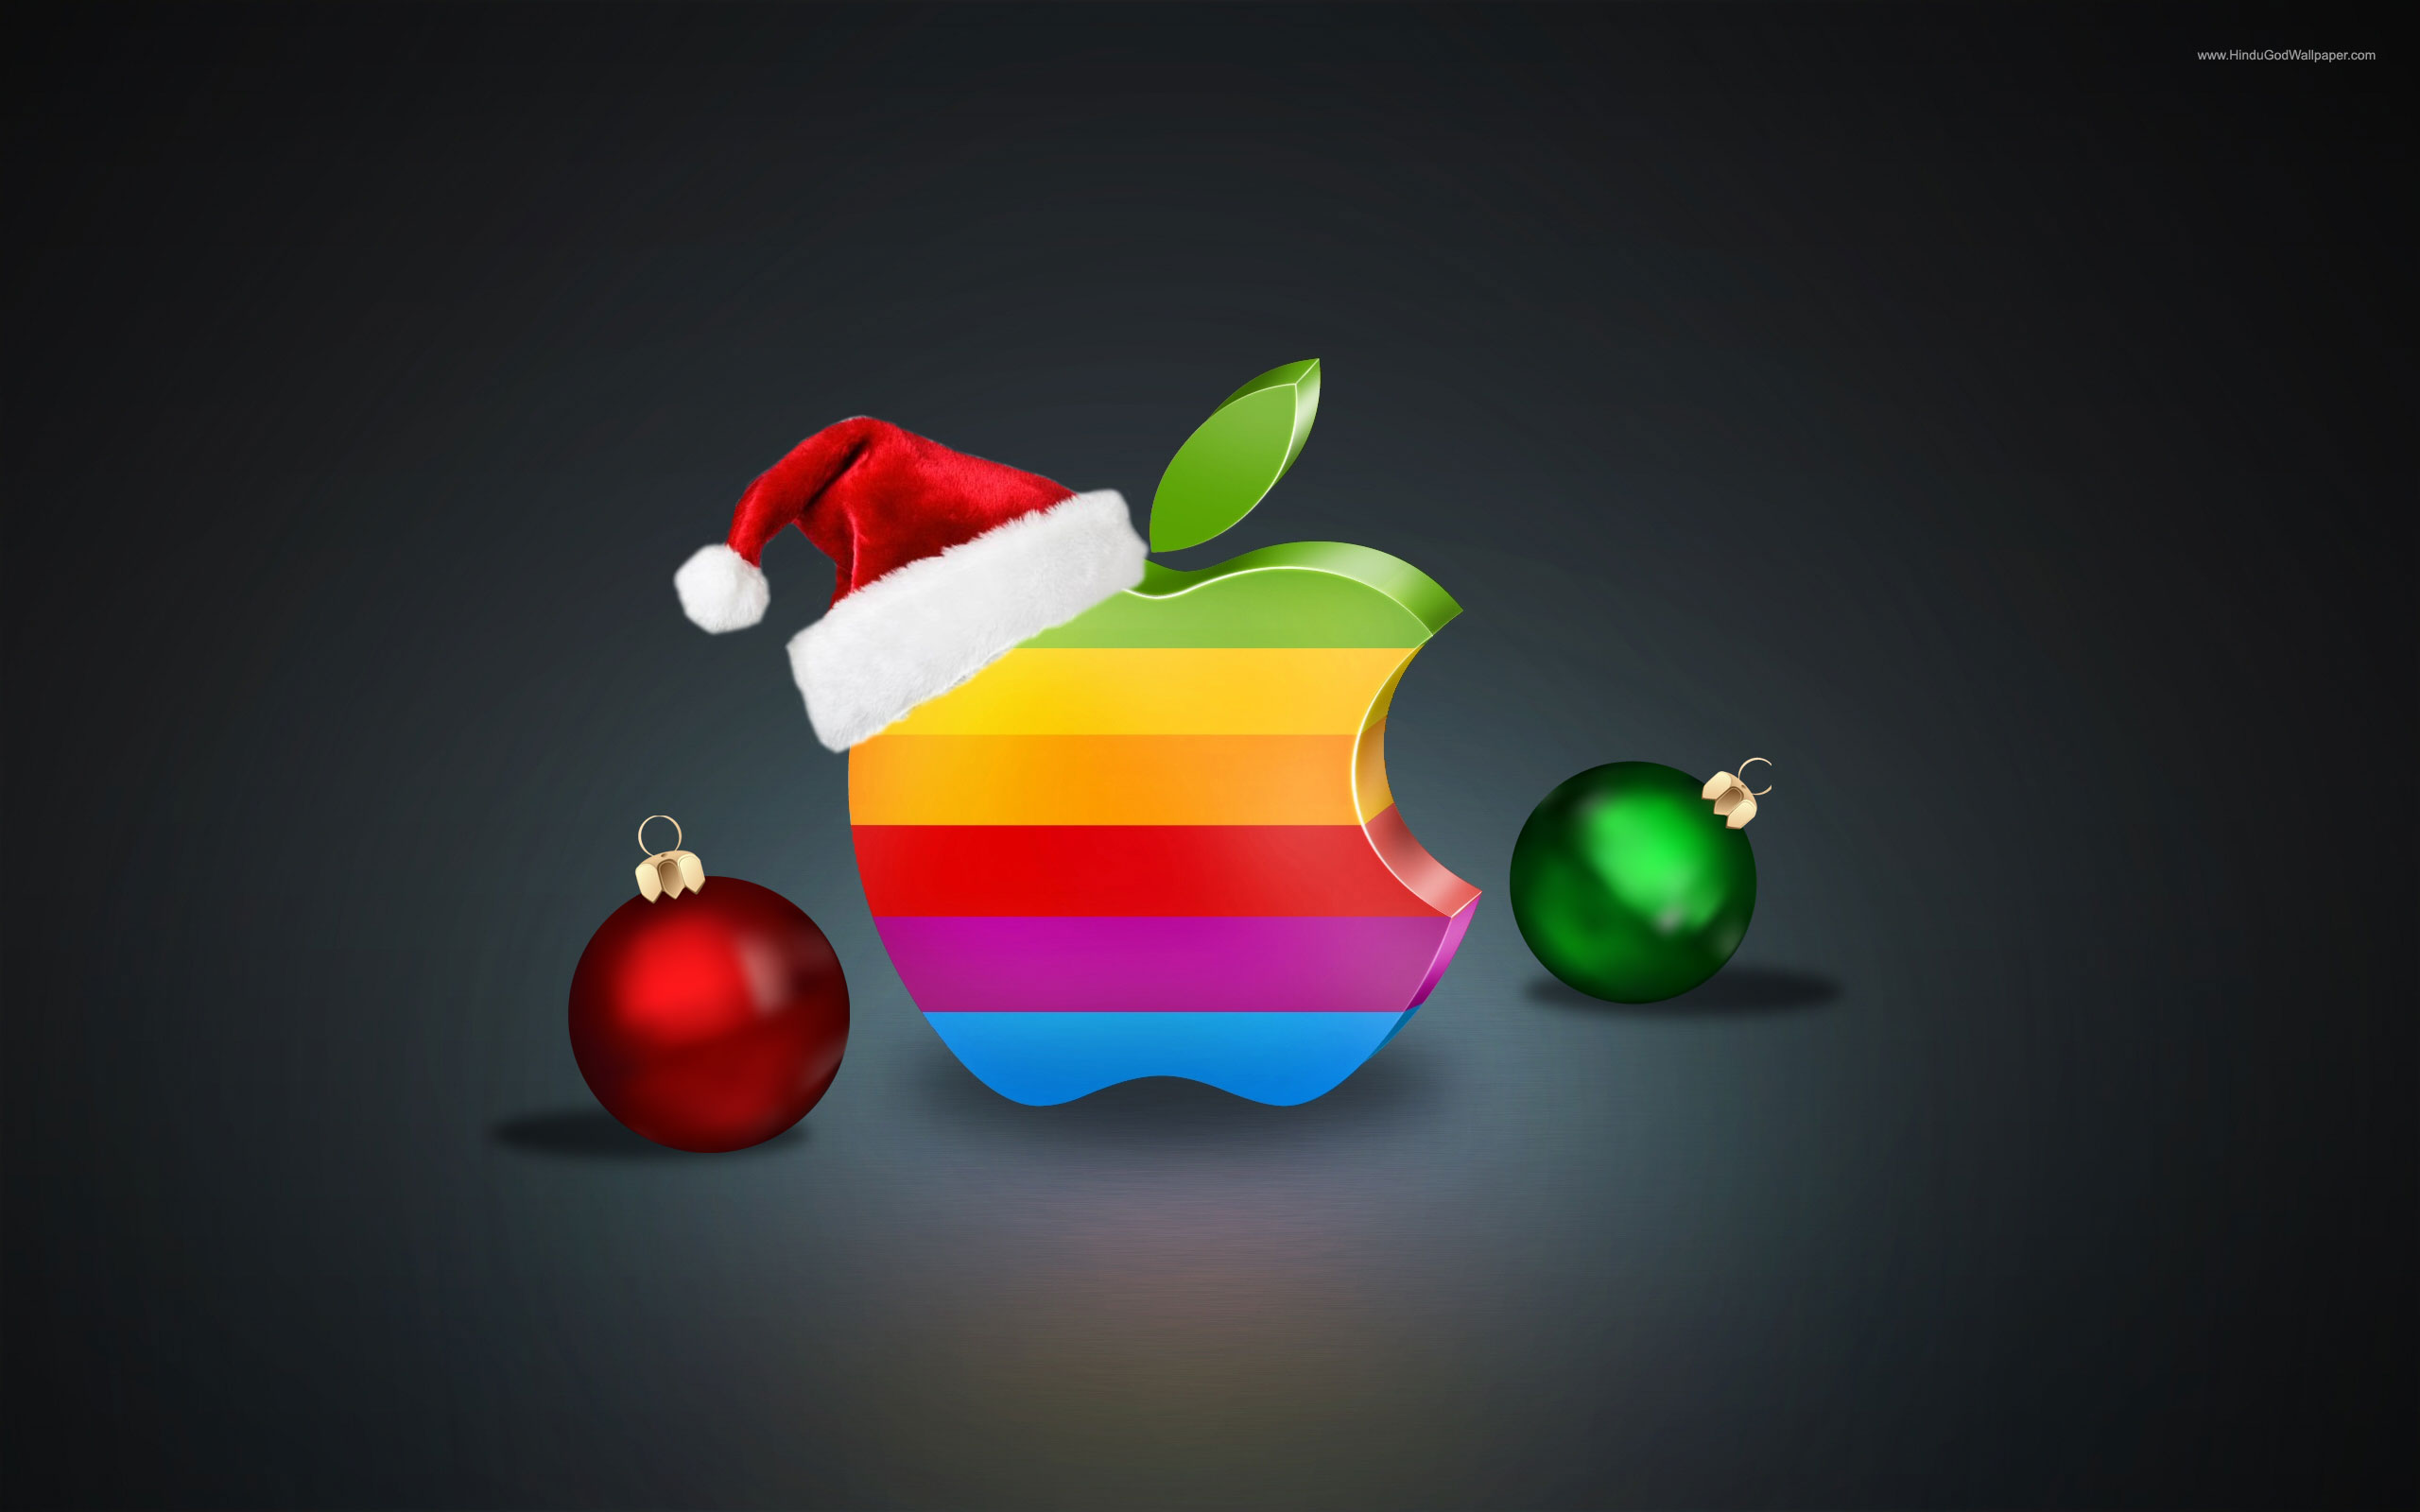 Cute Wallpapers Ipad App Apple Shares Its 2016 Holiday Gift Guide Iphone In